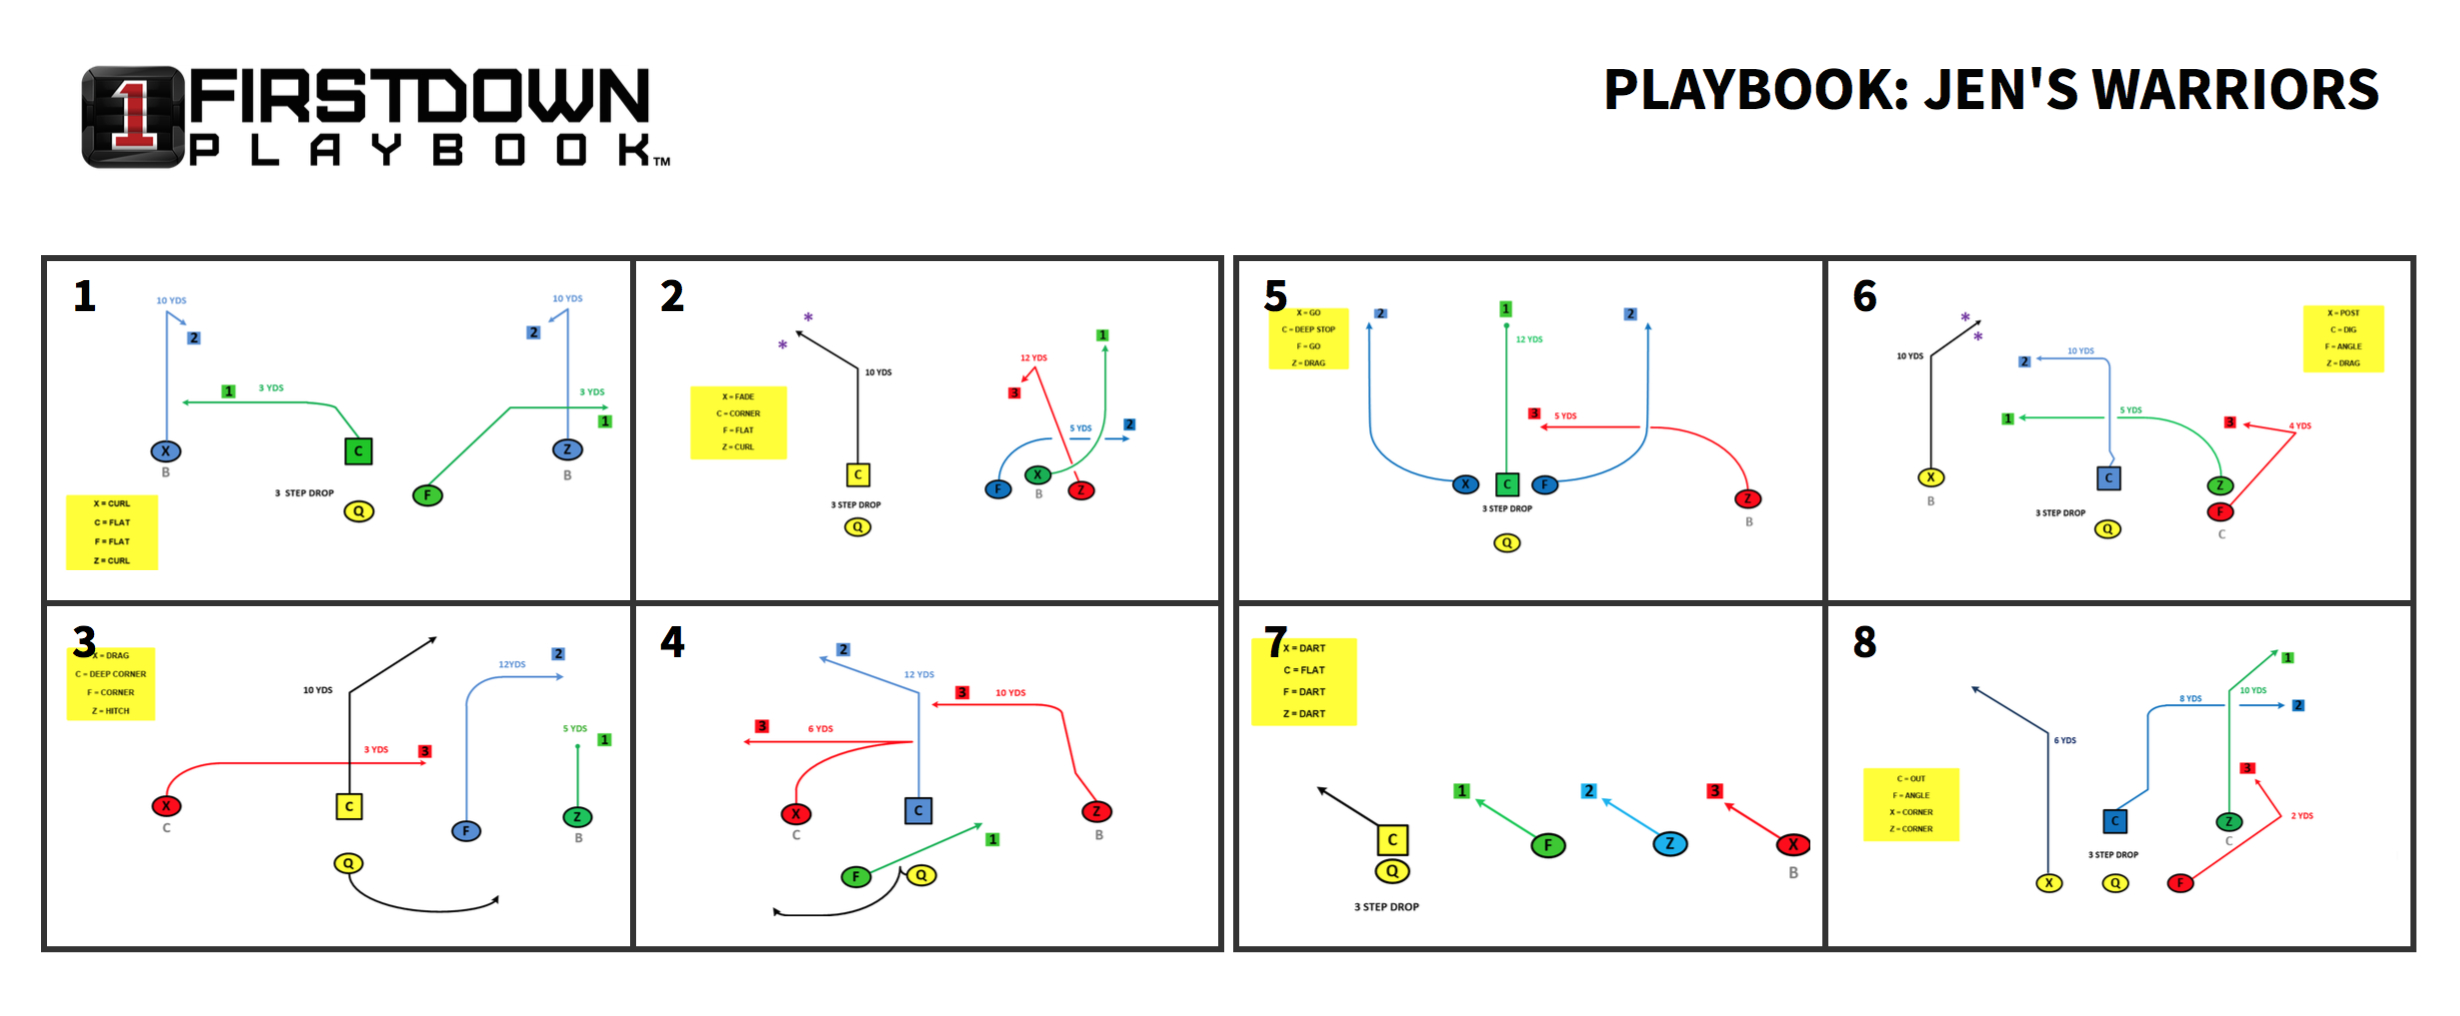 4V4, 5V5, 6V6 And 7V7 Flag Football Wristband Sheets For Your Team - Free Printable Football Play Sheets